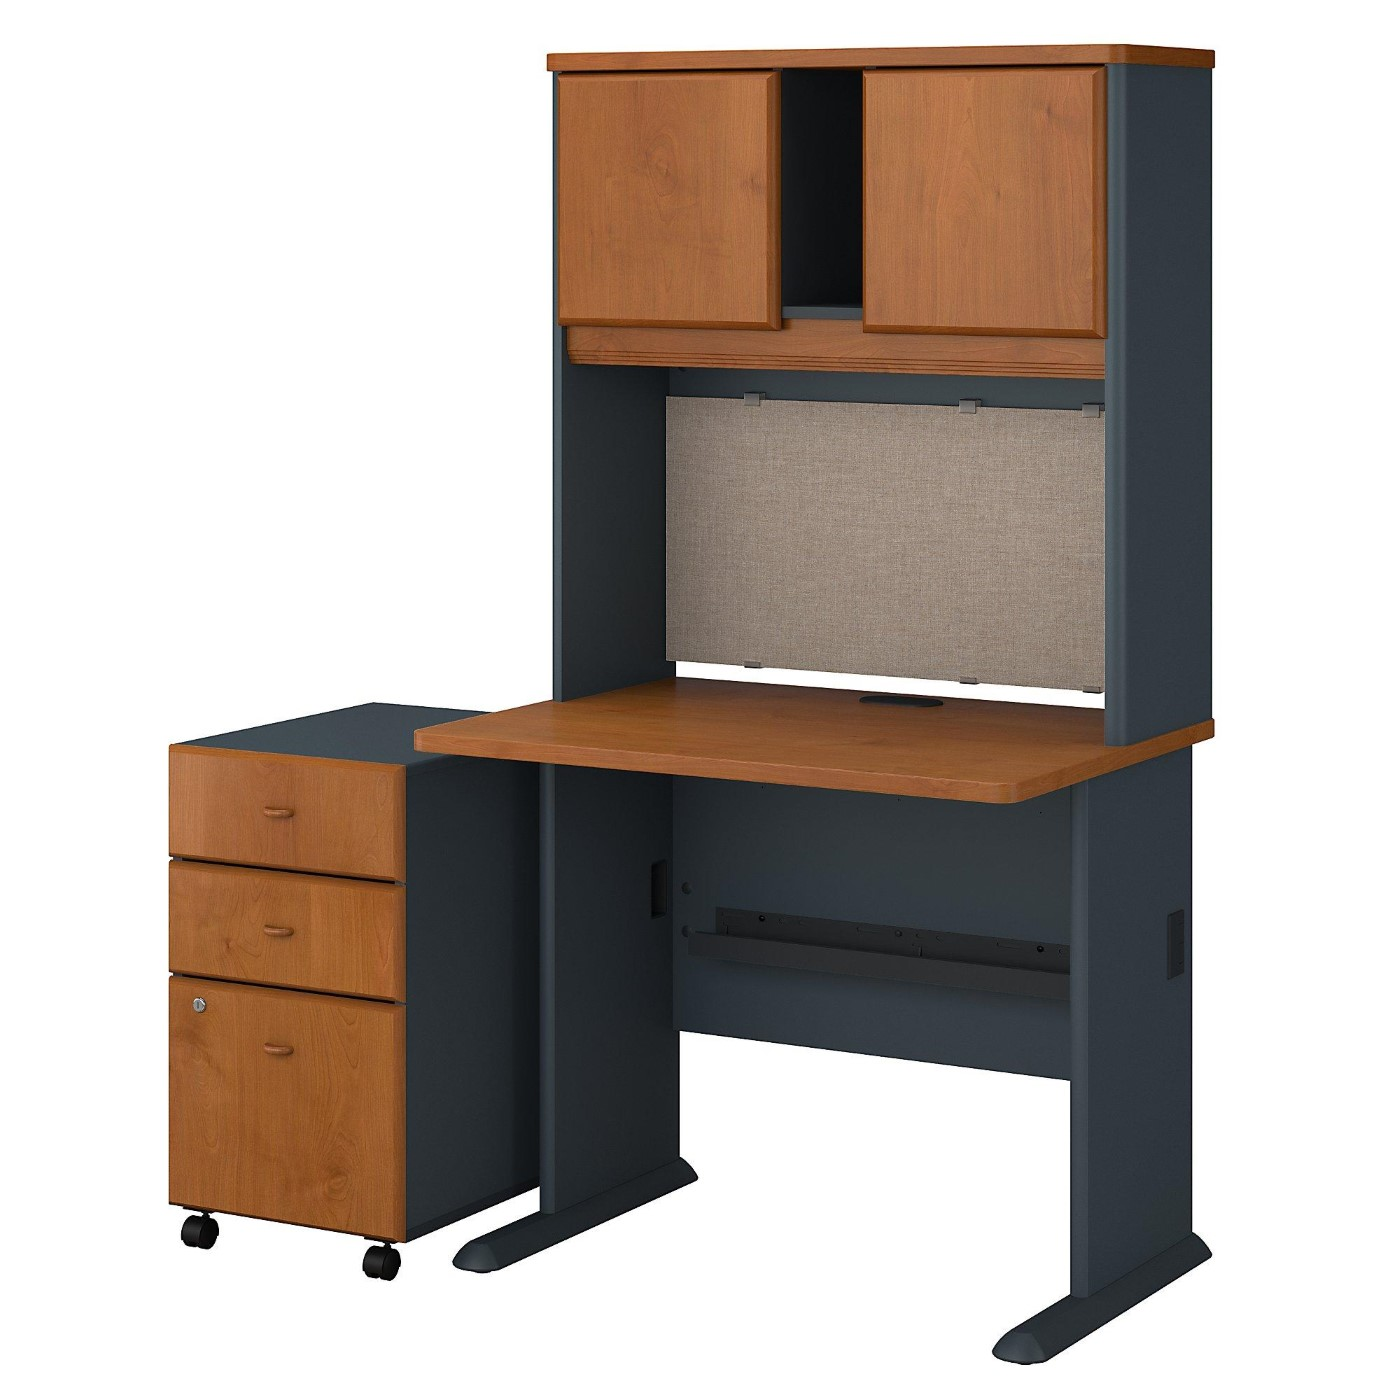 <font color=#c60><b>BUSH BUSINESS FURNITURE SERIES A 36W DESK WITH HUTCH AND MOBILE FILE CABINET. FREE SHIPPING</font></b></font>